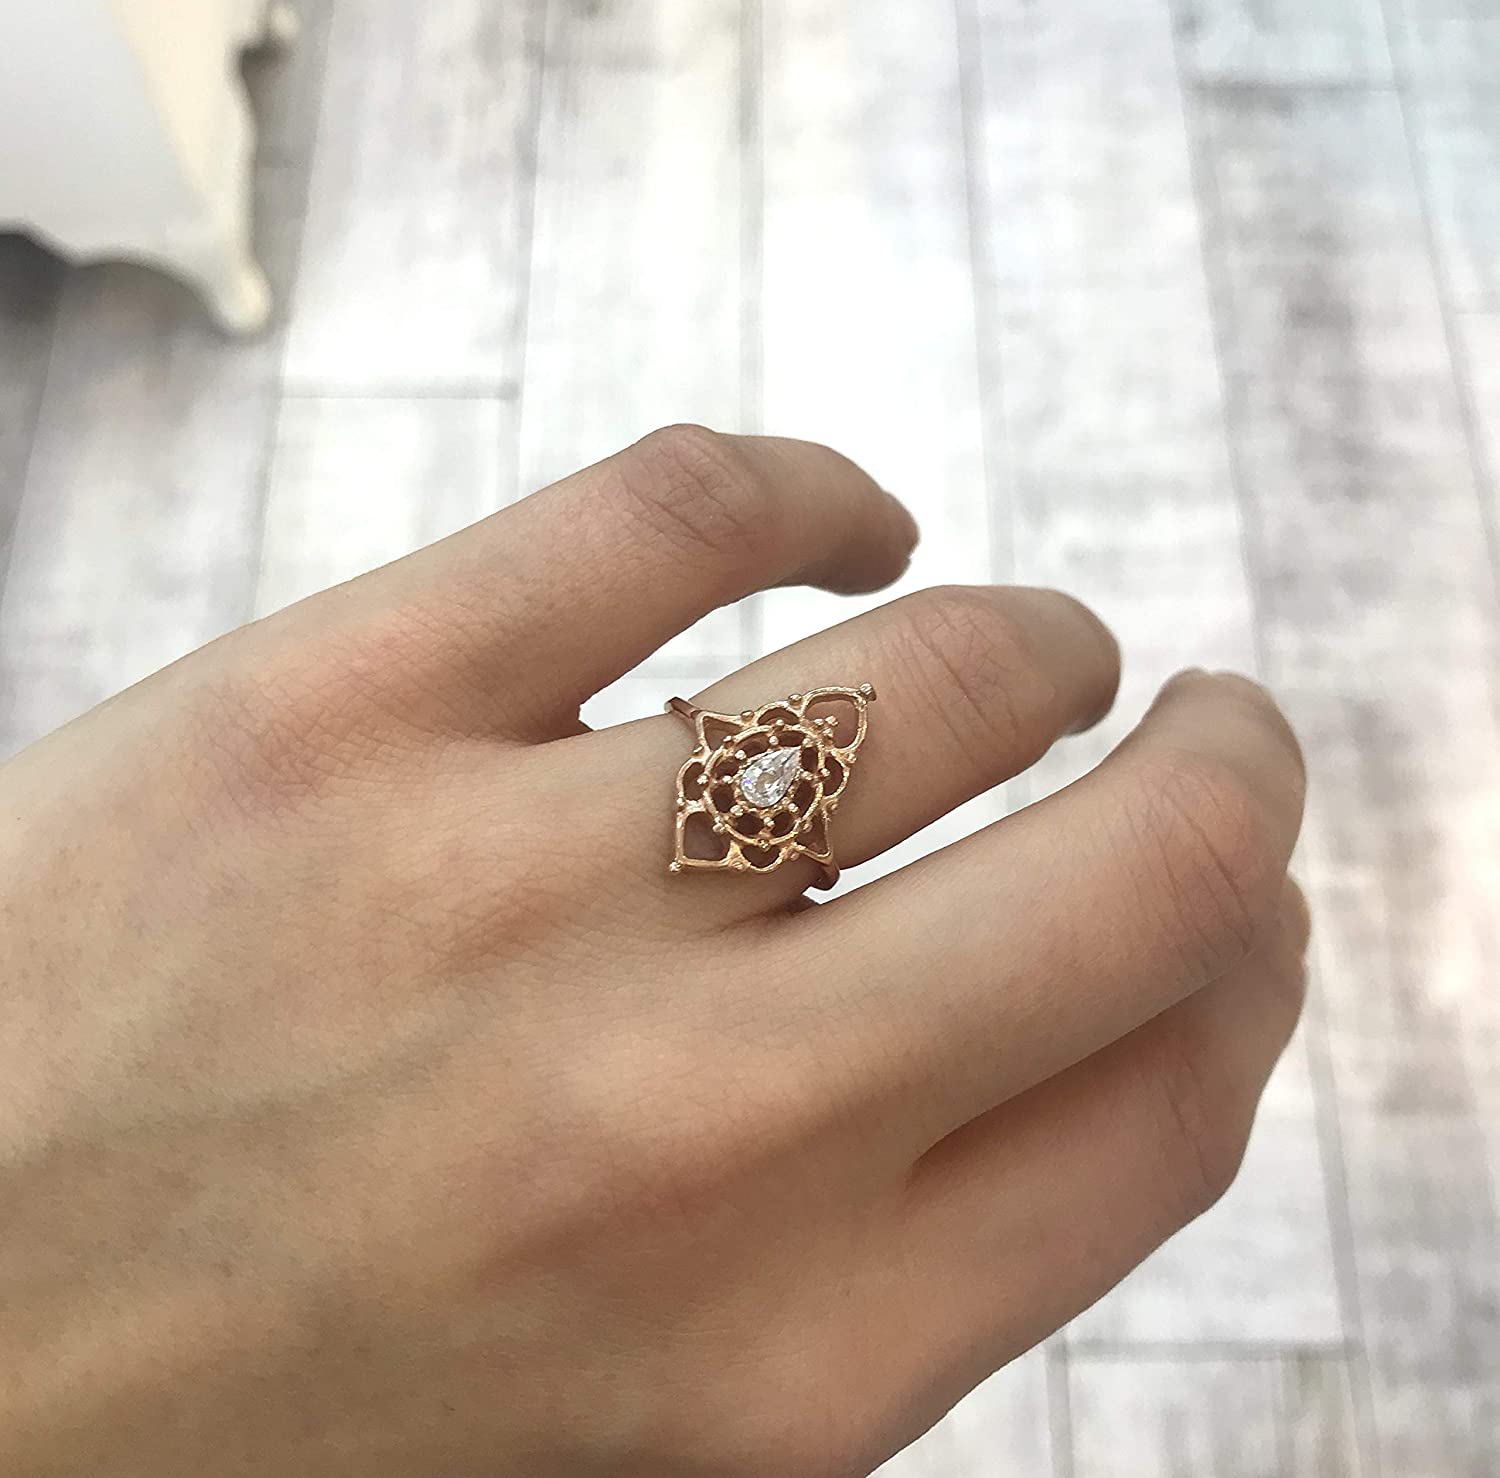 lycia jewelry Statement Ring Cubic Zirconia Gemstone 925 Silver 14K Rose Gold Plated Adjustable